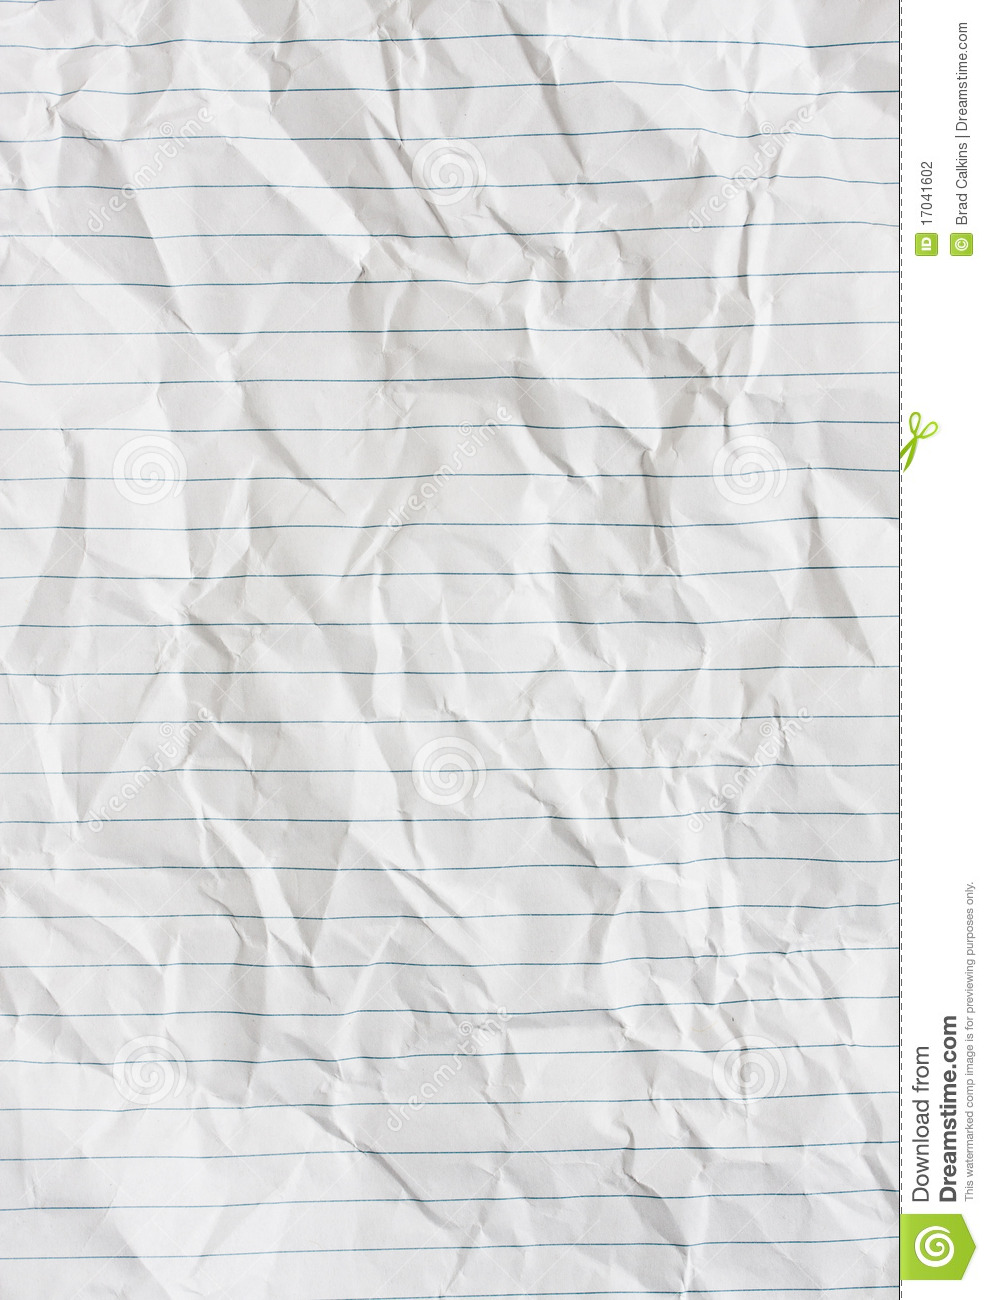 lined paper stock photo. image of crumple, notebook, wrinkled - 17041602